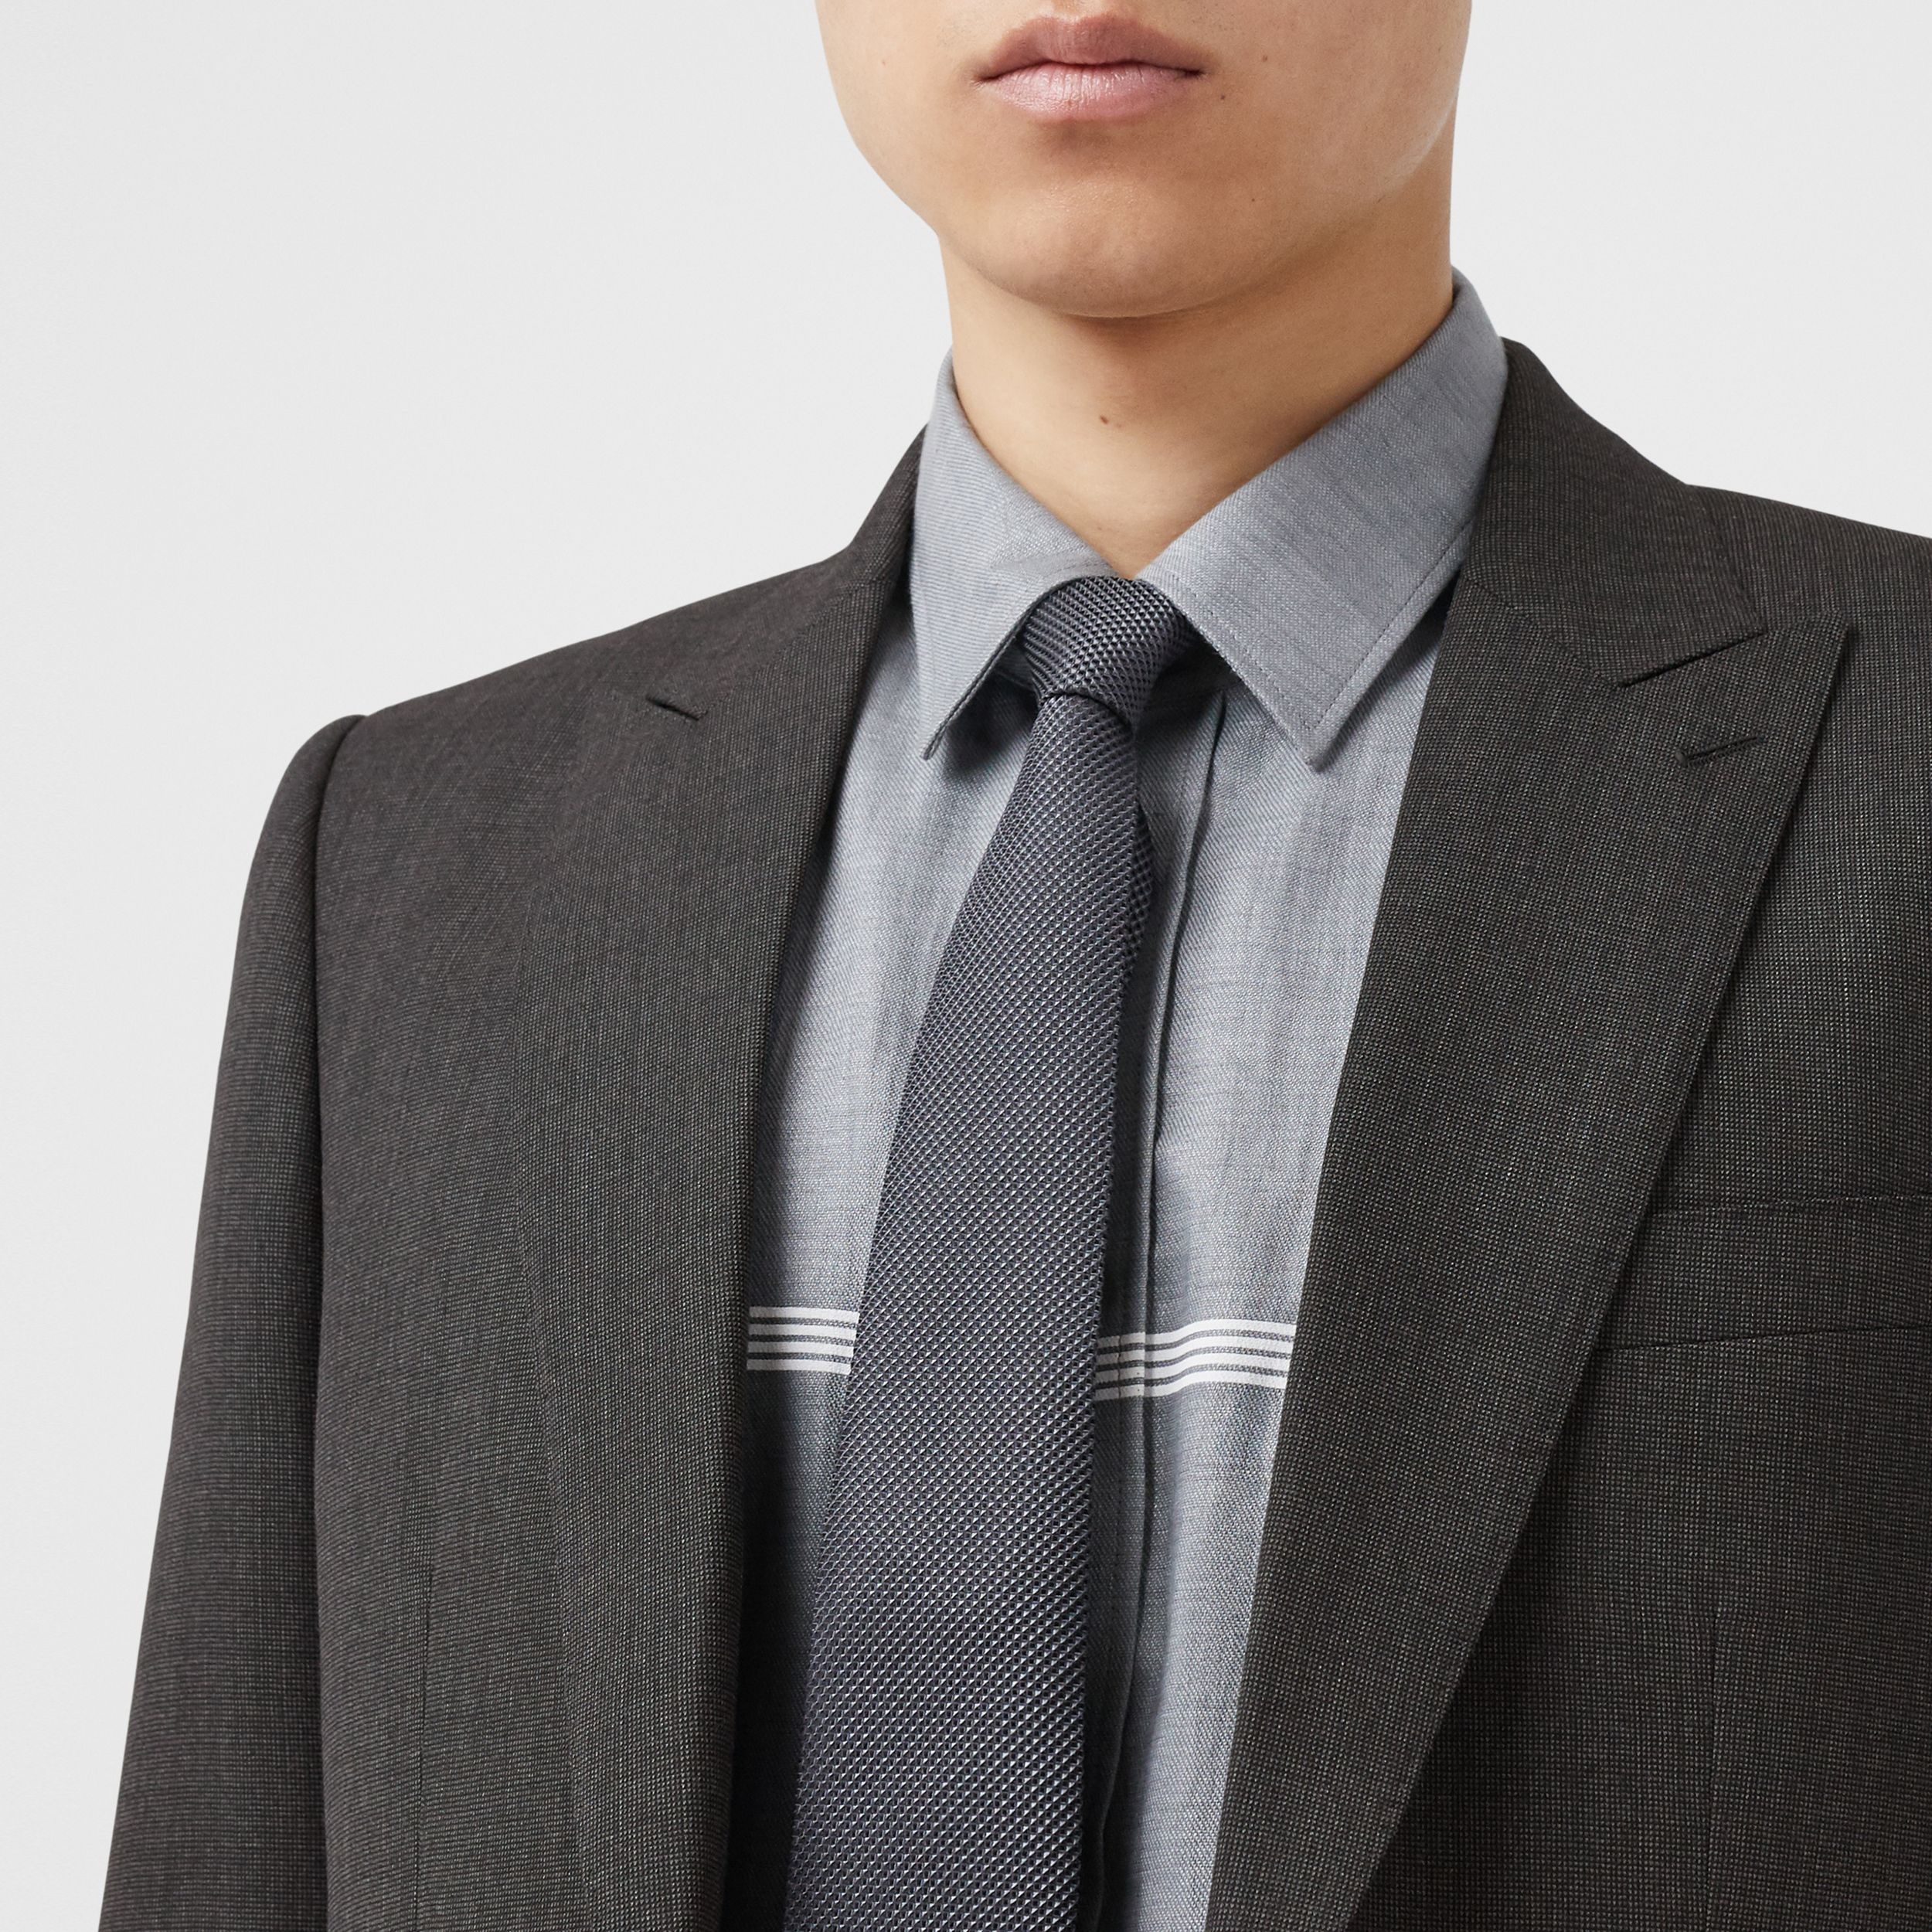 Classic Fit Broken Wool Twill Suit in Mid Grey - Men | Burberry - 2